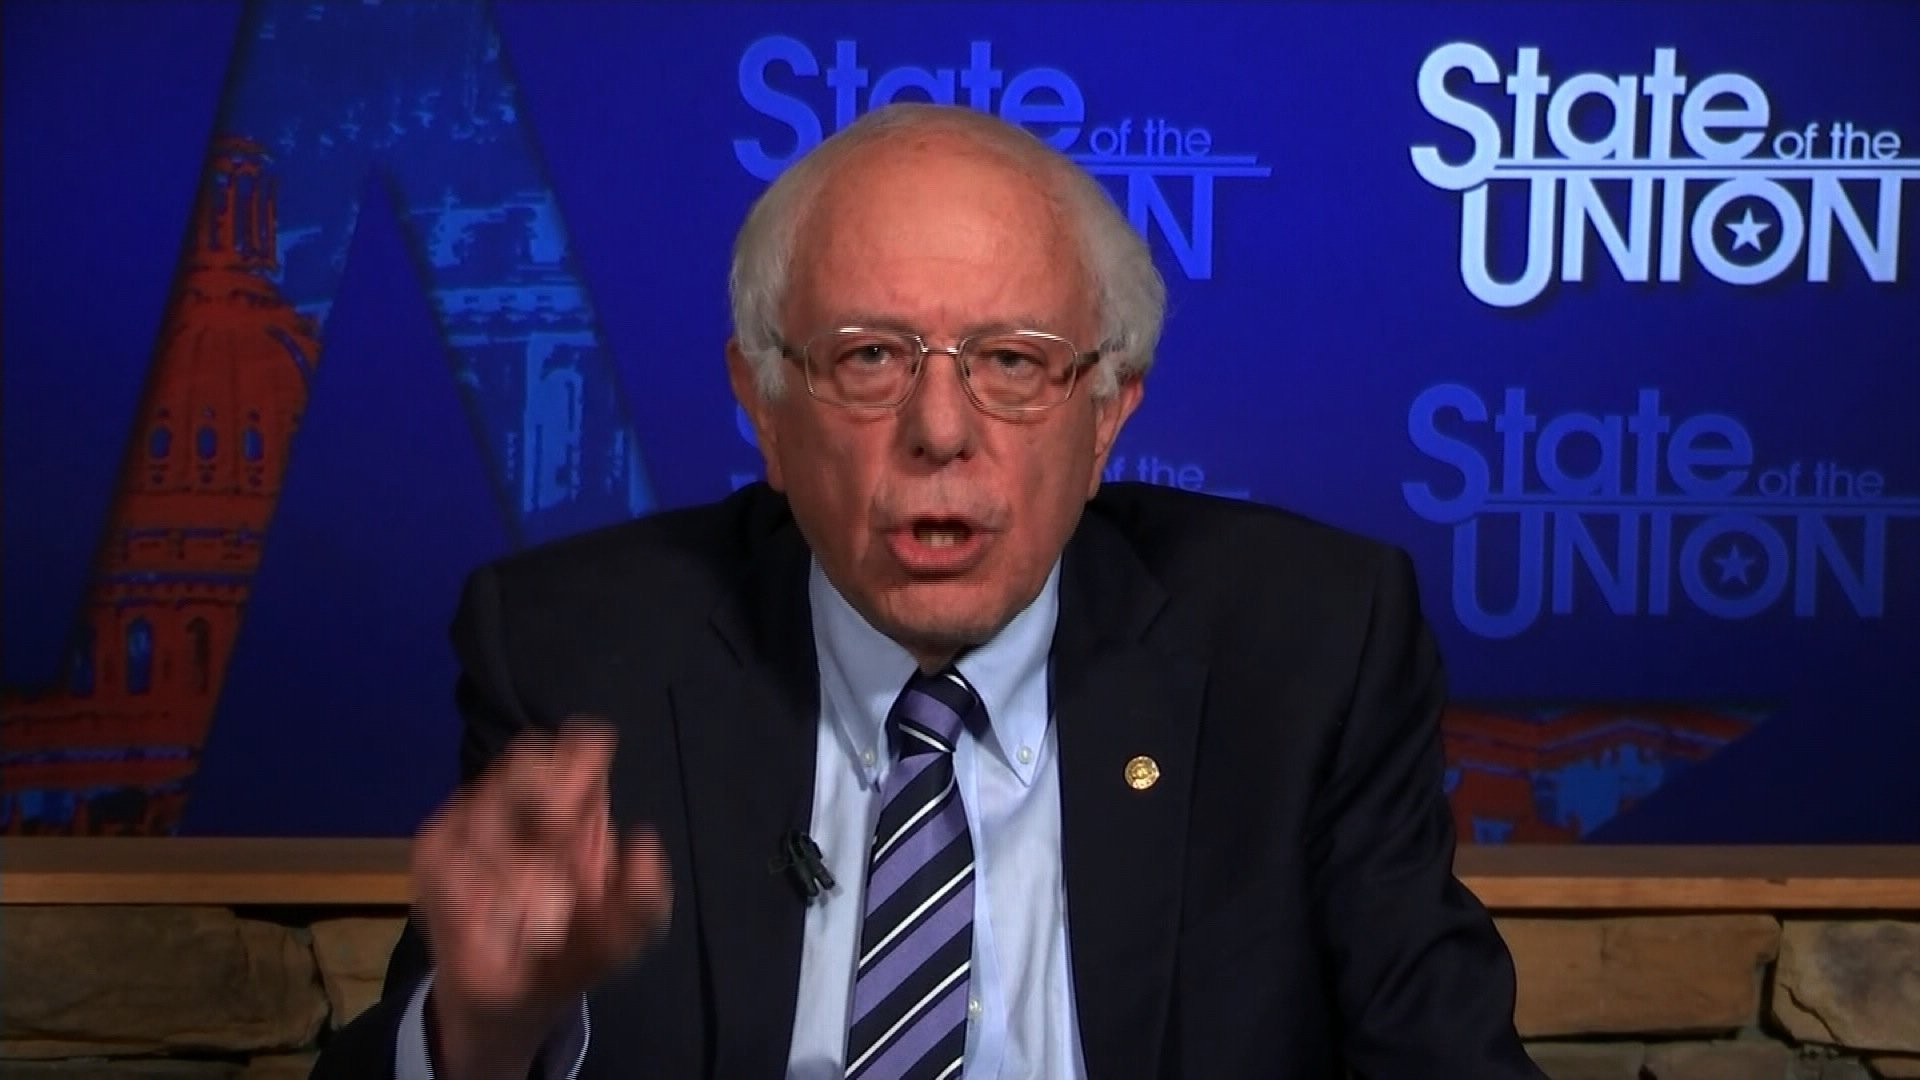 Bernie Sanders: 'Of course' I would use tariffs as President